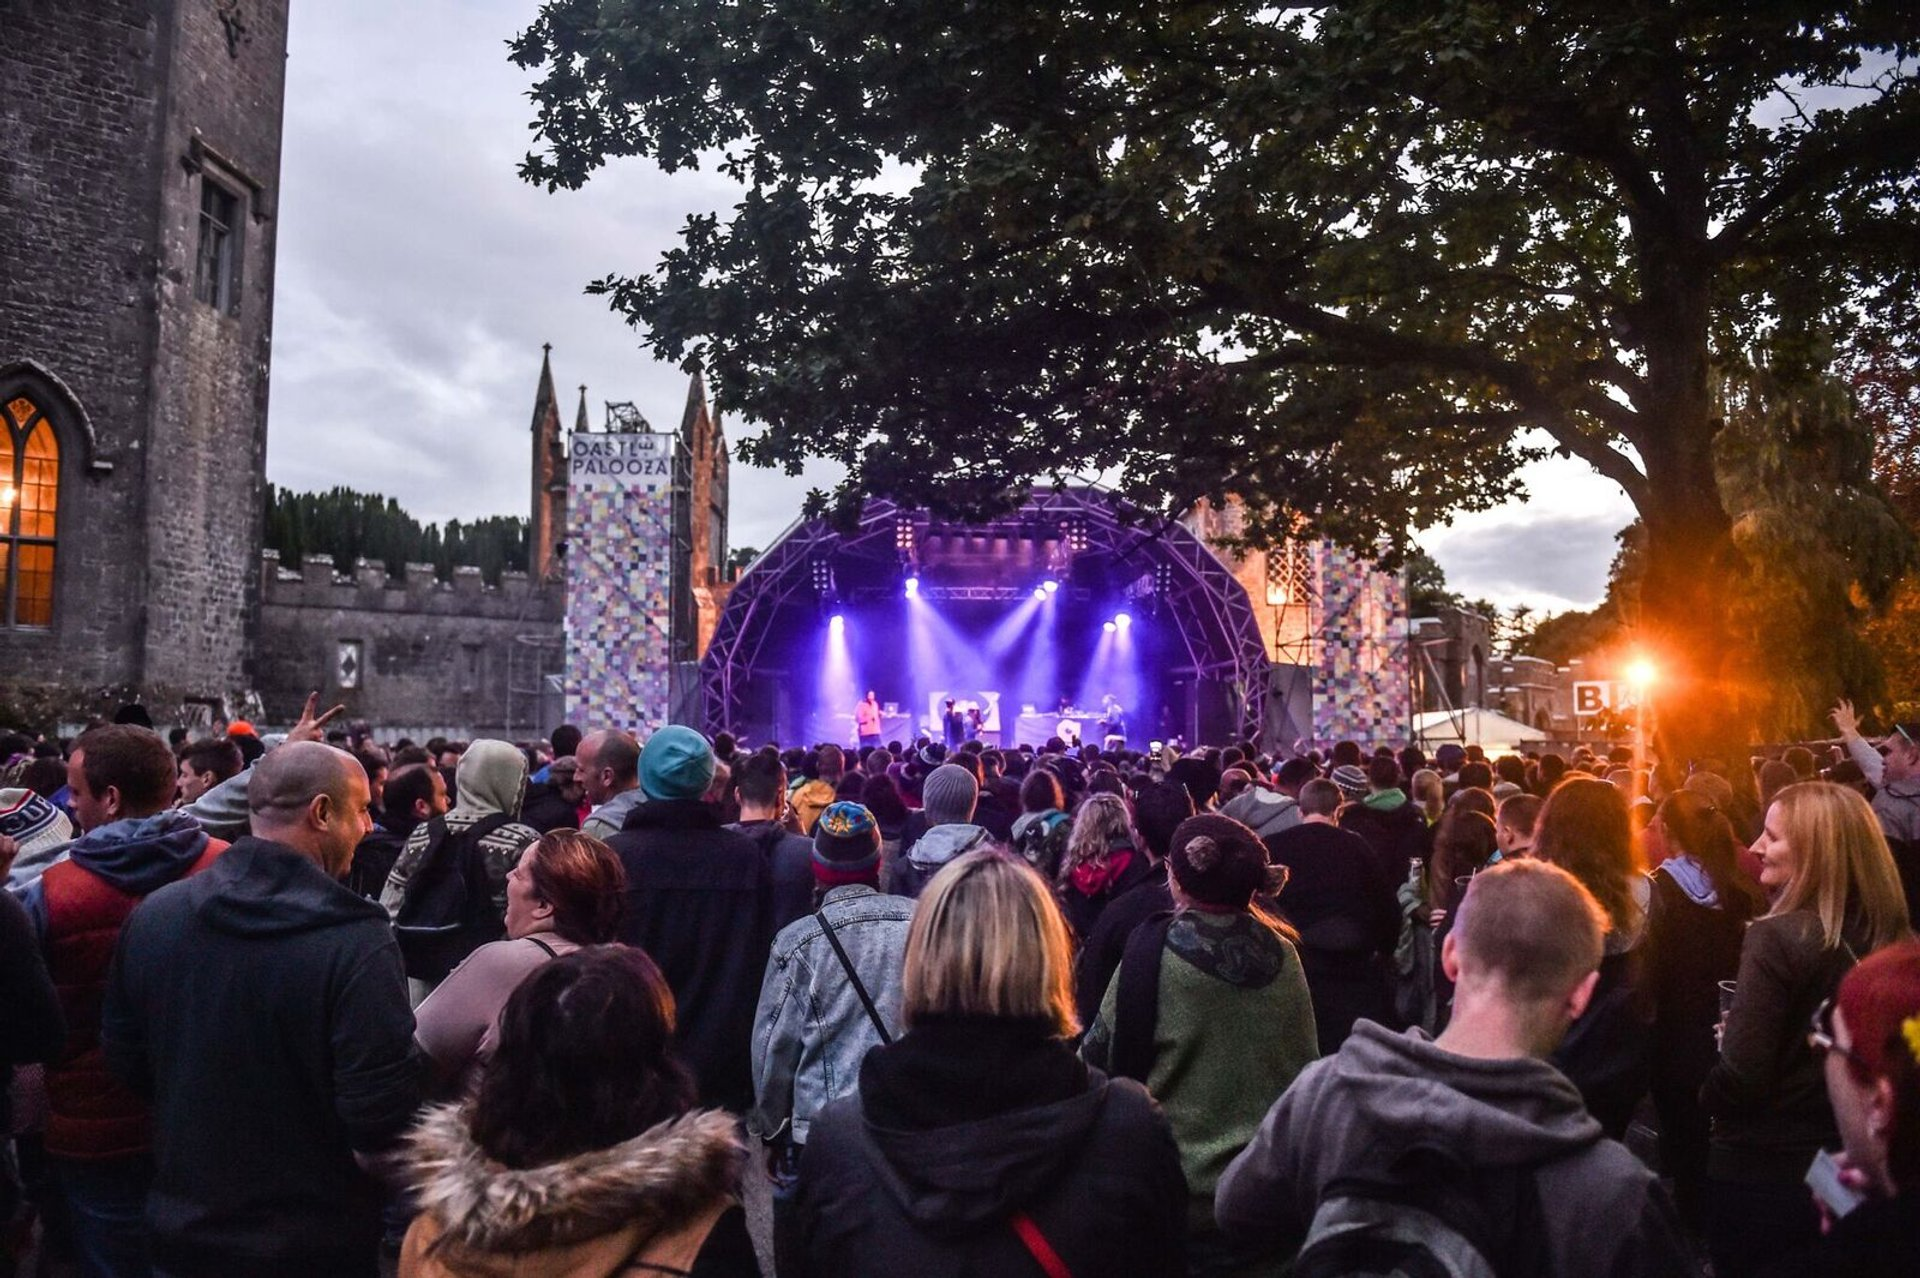 Castlepalooza in Ireland - Best Season 2020